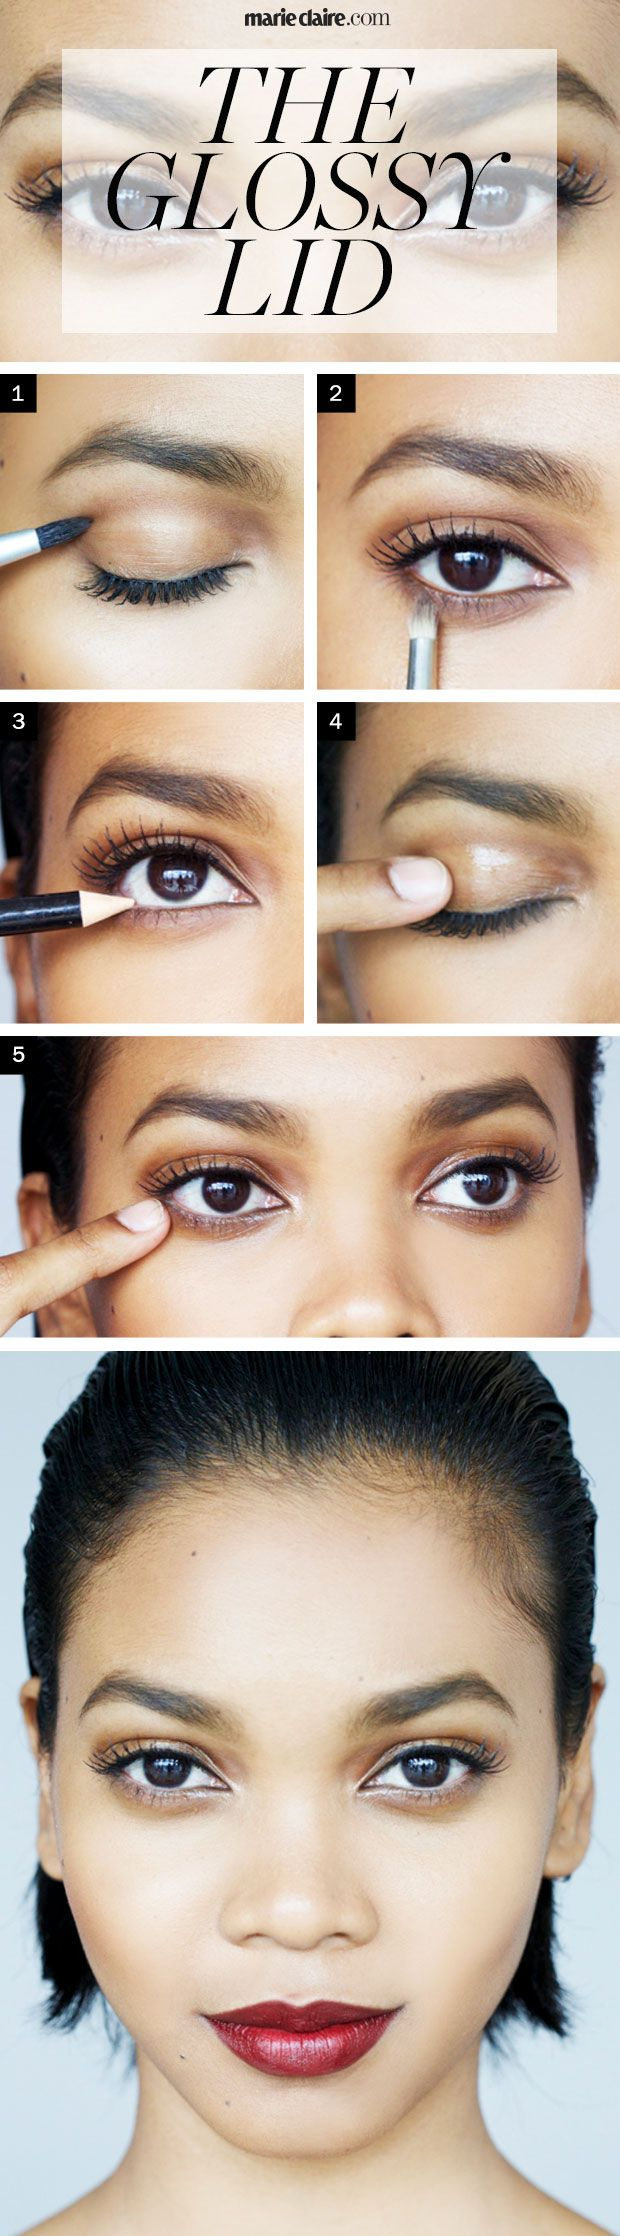 Makeup how to the glossy lid ccuart Gallery